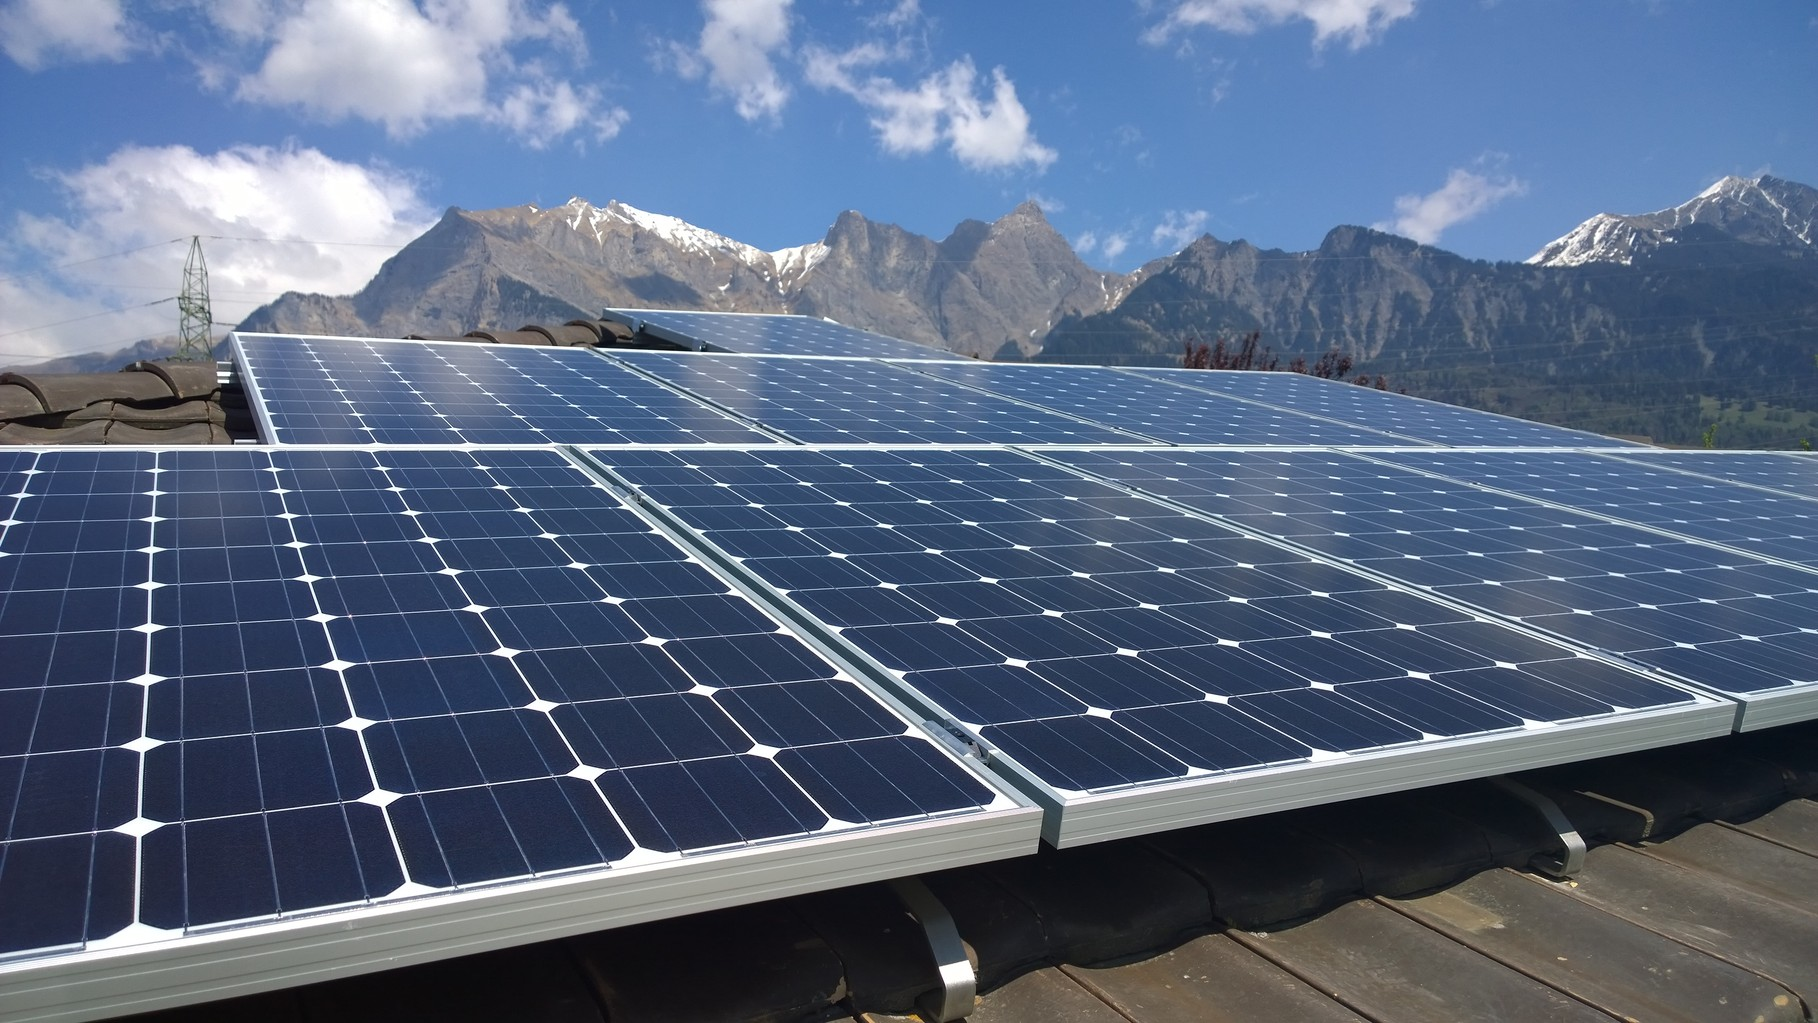 PV-Anlage 9kw in Bad Ragaz. Modul: Yingli Panda 275 Monosol Unterbau: IBC Top-Fix 200